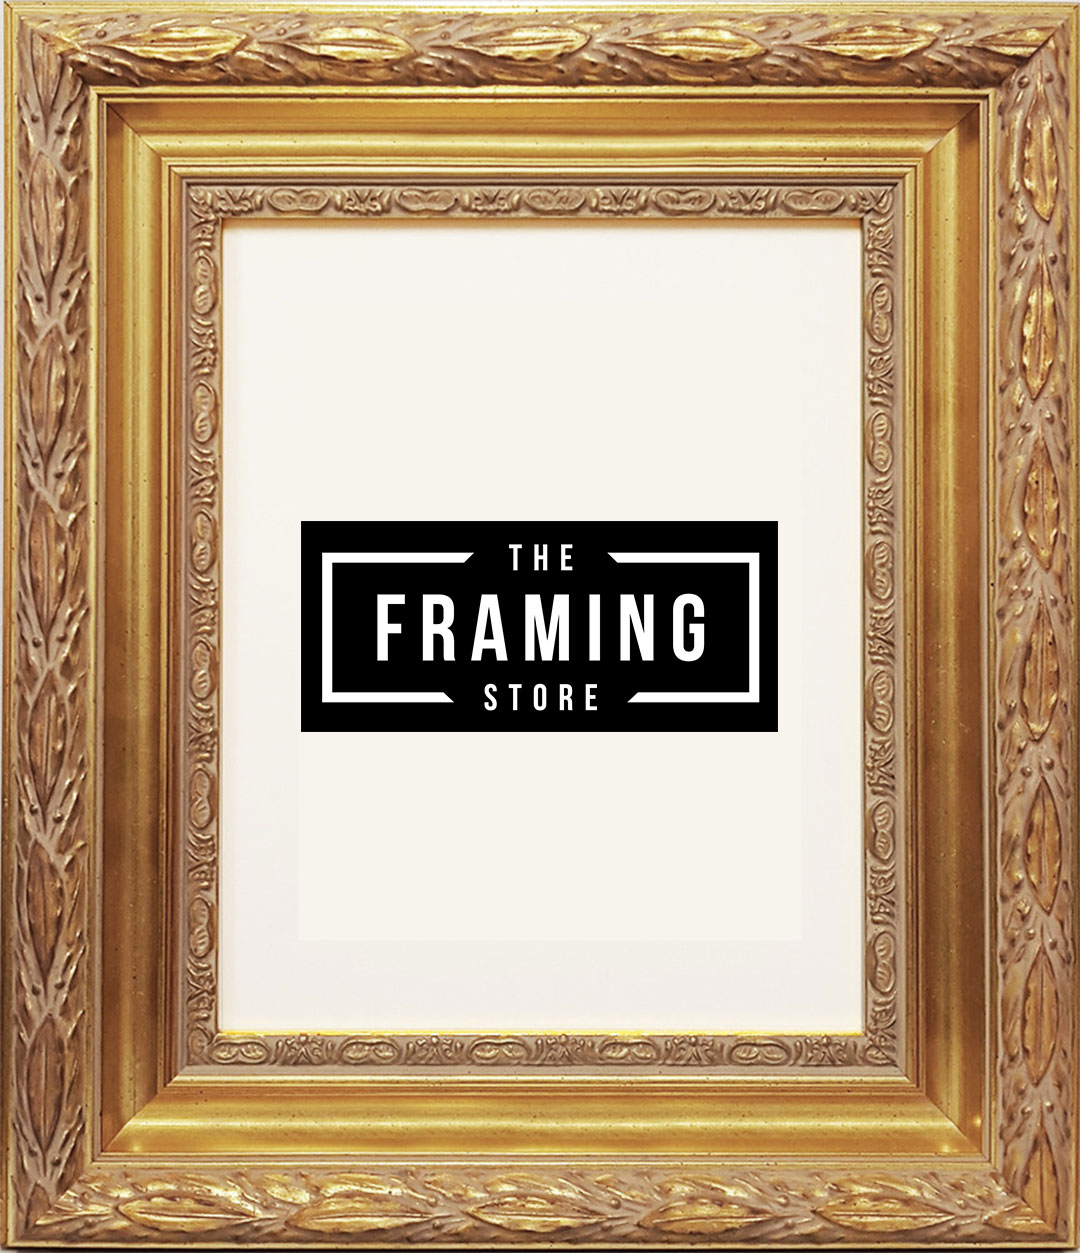 Australian made 8x10 Gold fancy frame (203mm x 254mm)